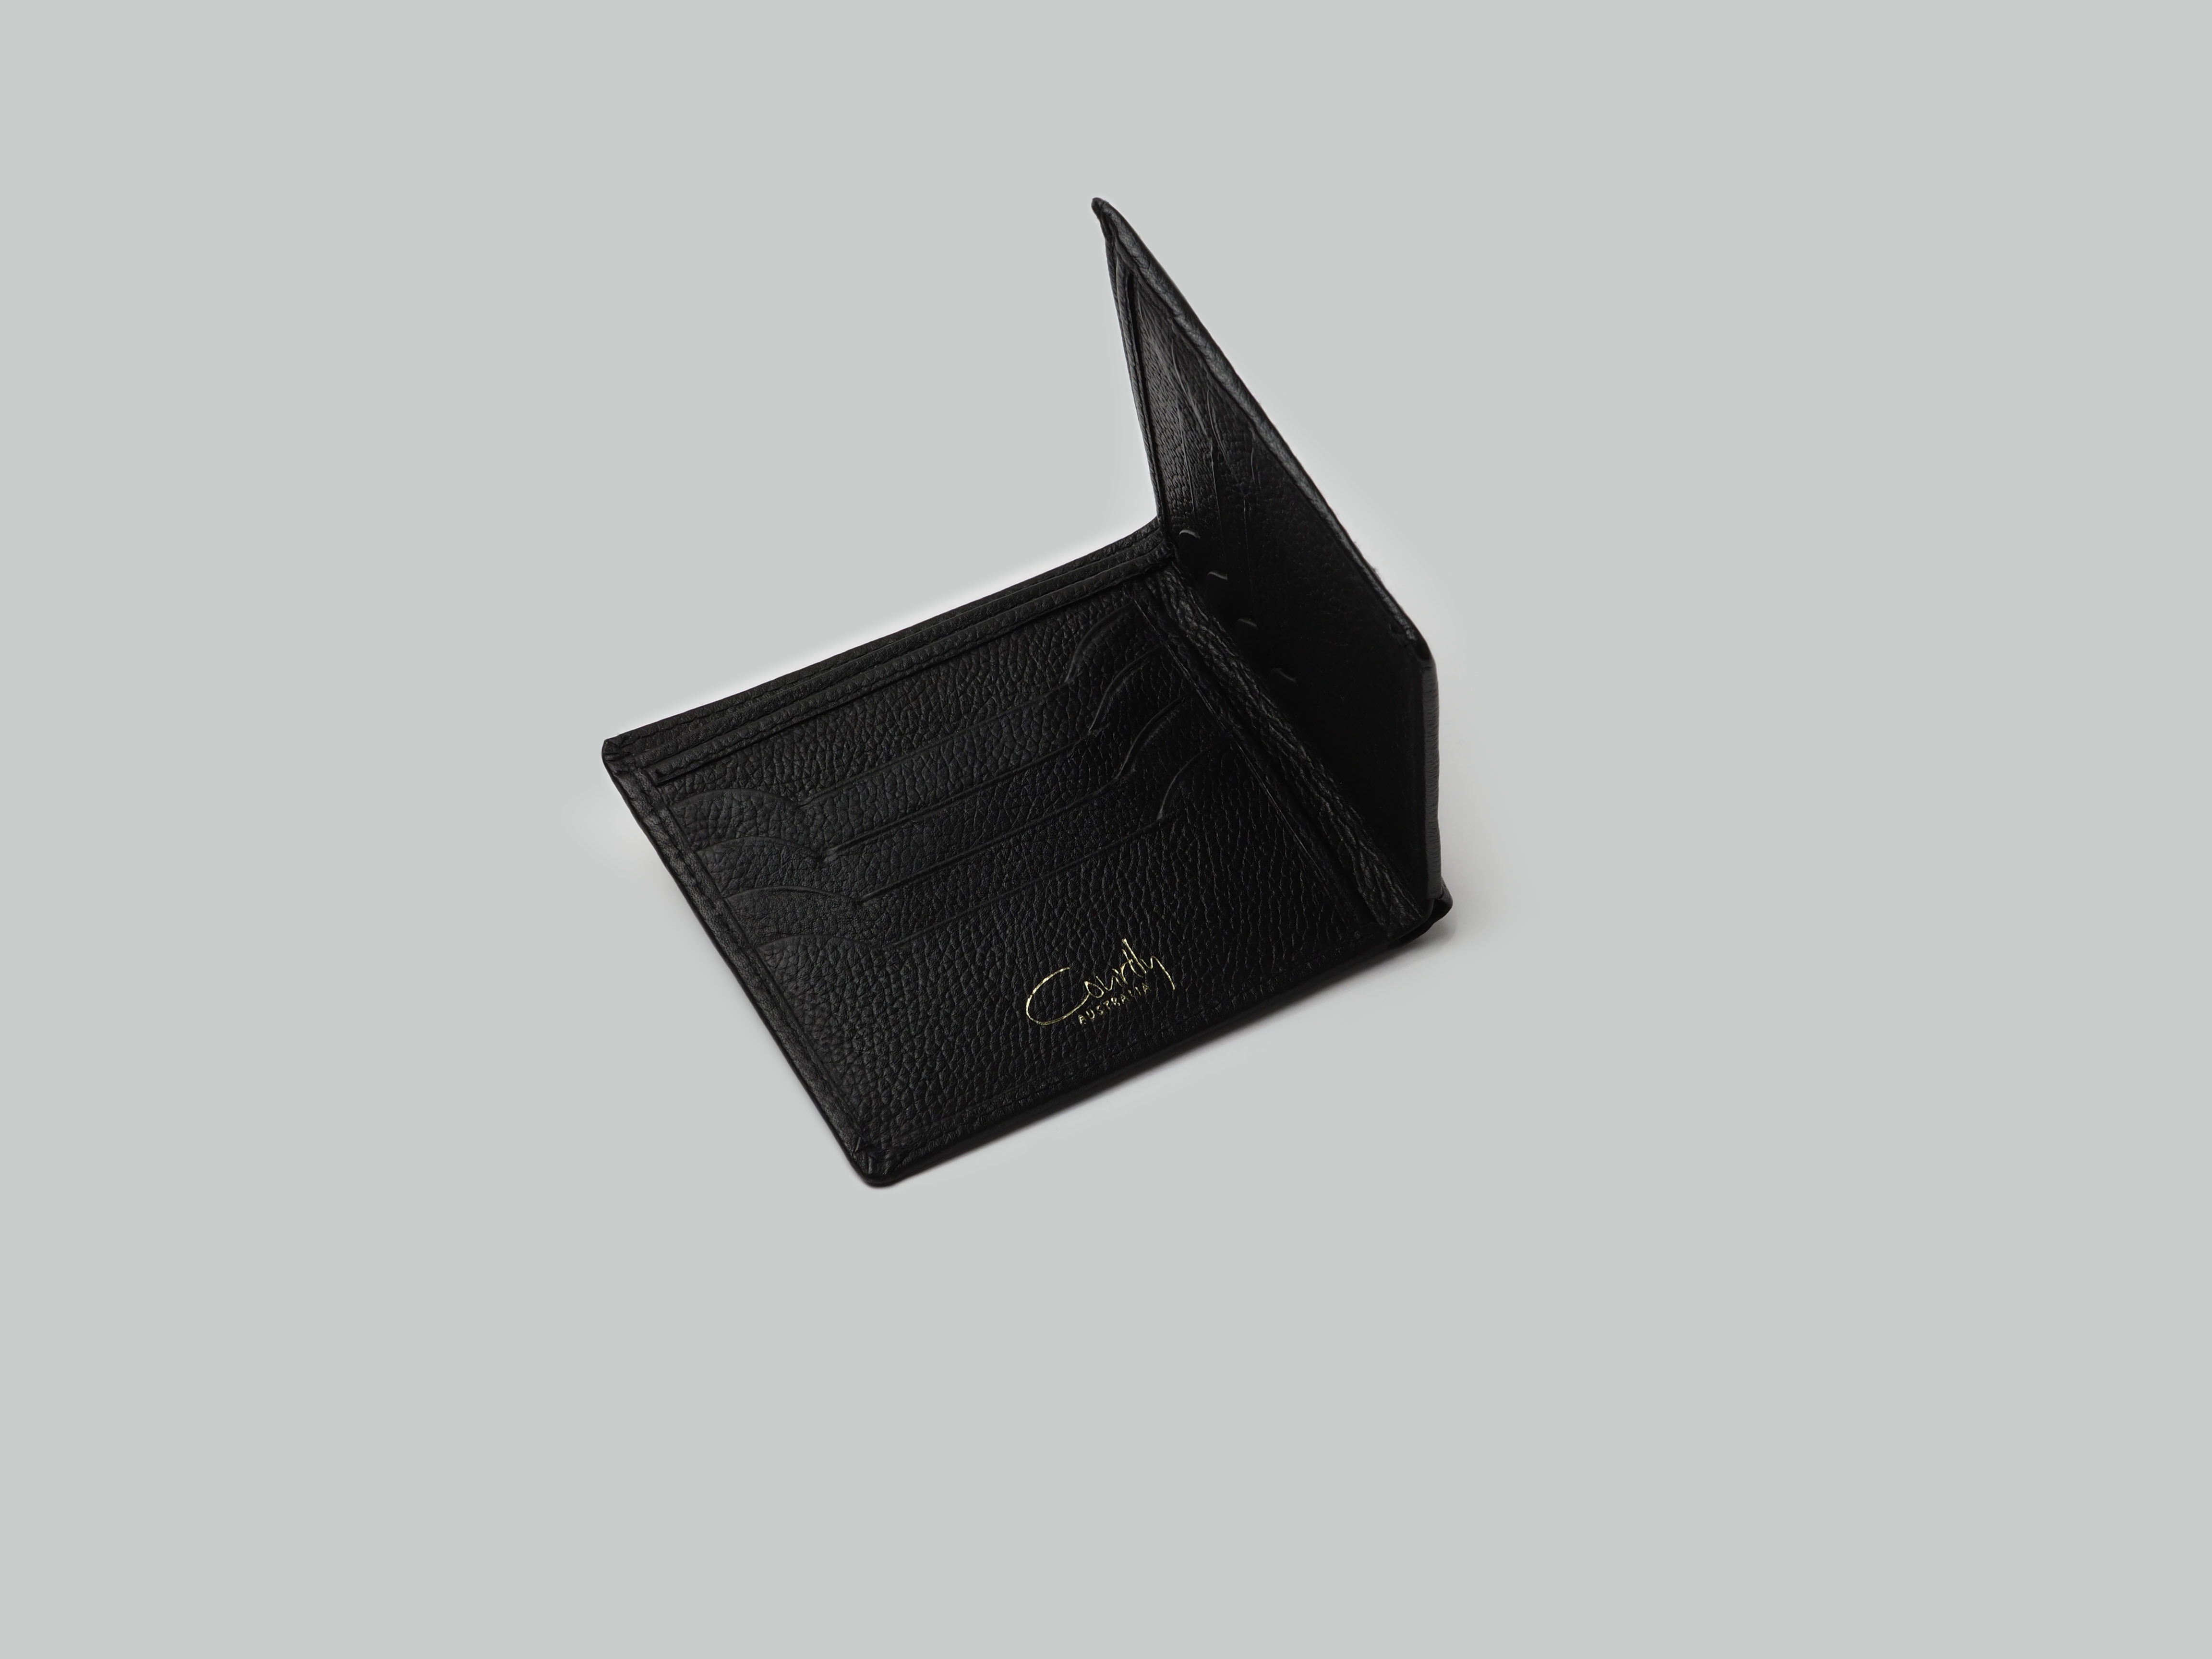 8 SLOT BIFOLD WALLET - Courtly Australia